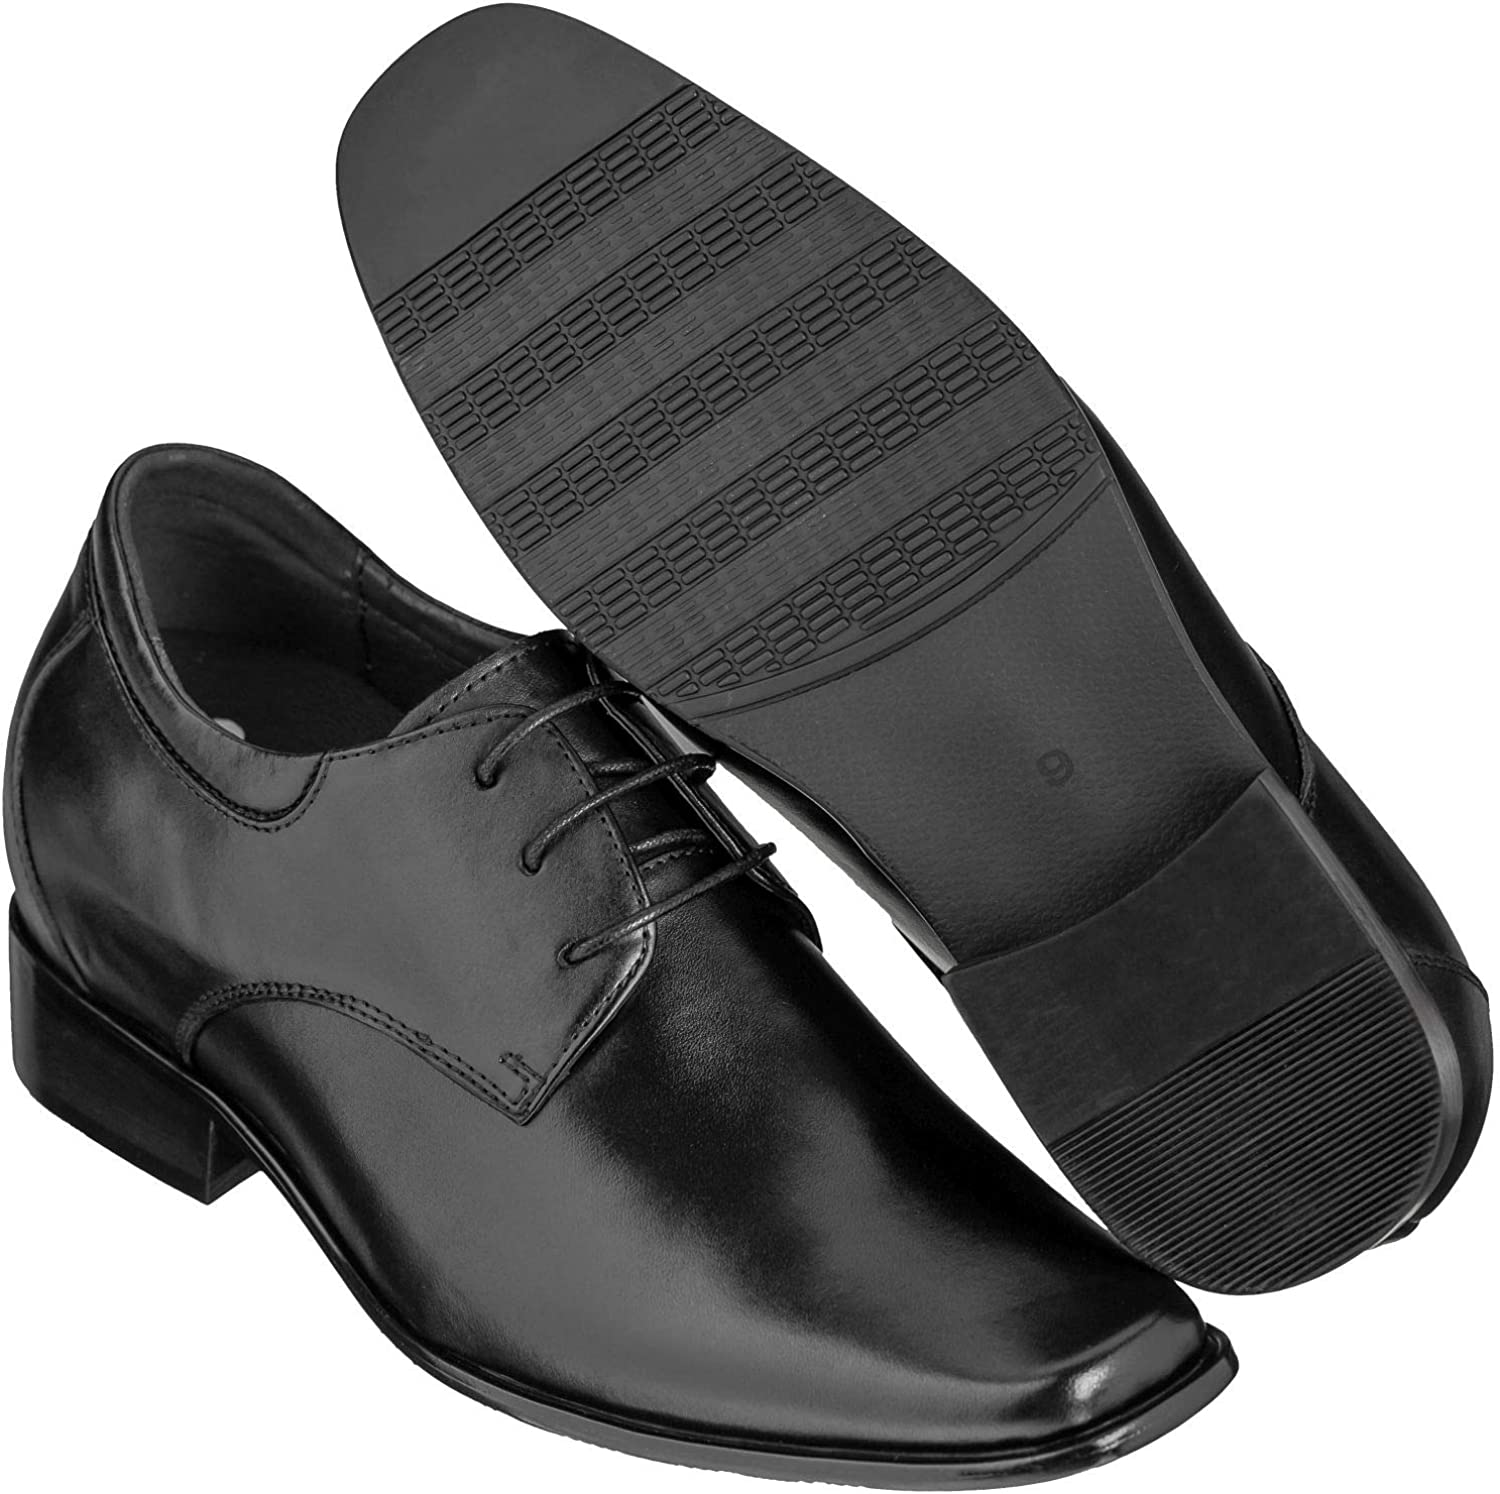 Height Increasing Elevator Shoes CALDEN K5655-3.2 Inches Taller Black Dress Shoes